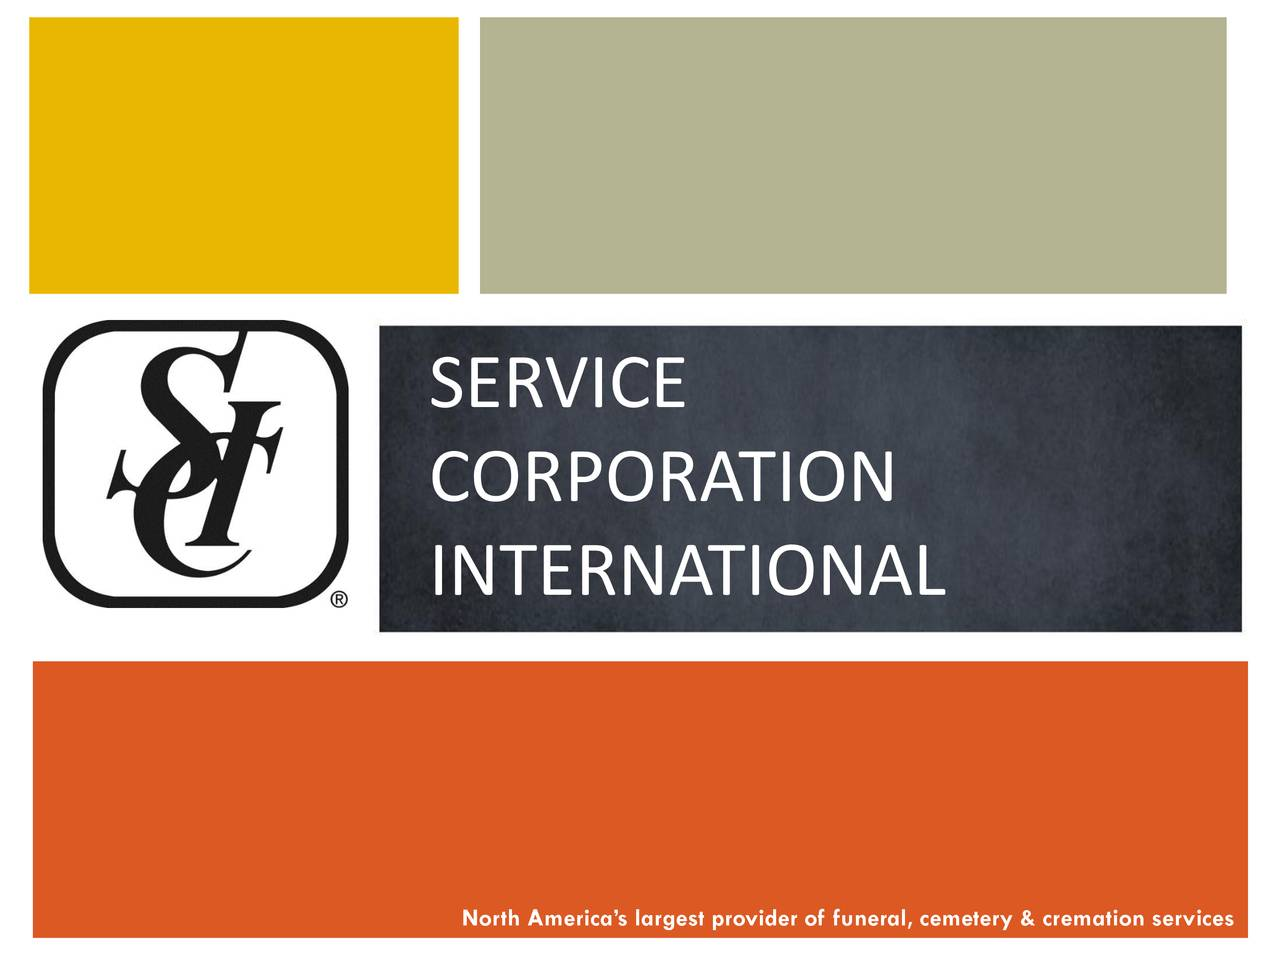 service corporation international Service corporation international (sci) is to death what h&r block is to taxes sci, the largest funeral and cemetery services company in north america, operates more than 1,500 funeral homes and some 470 cemeteries in 45 us states, eight canadian provinces, the district of columbia, and puerto rico.